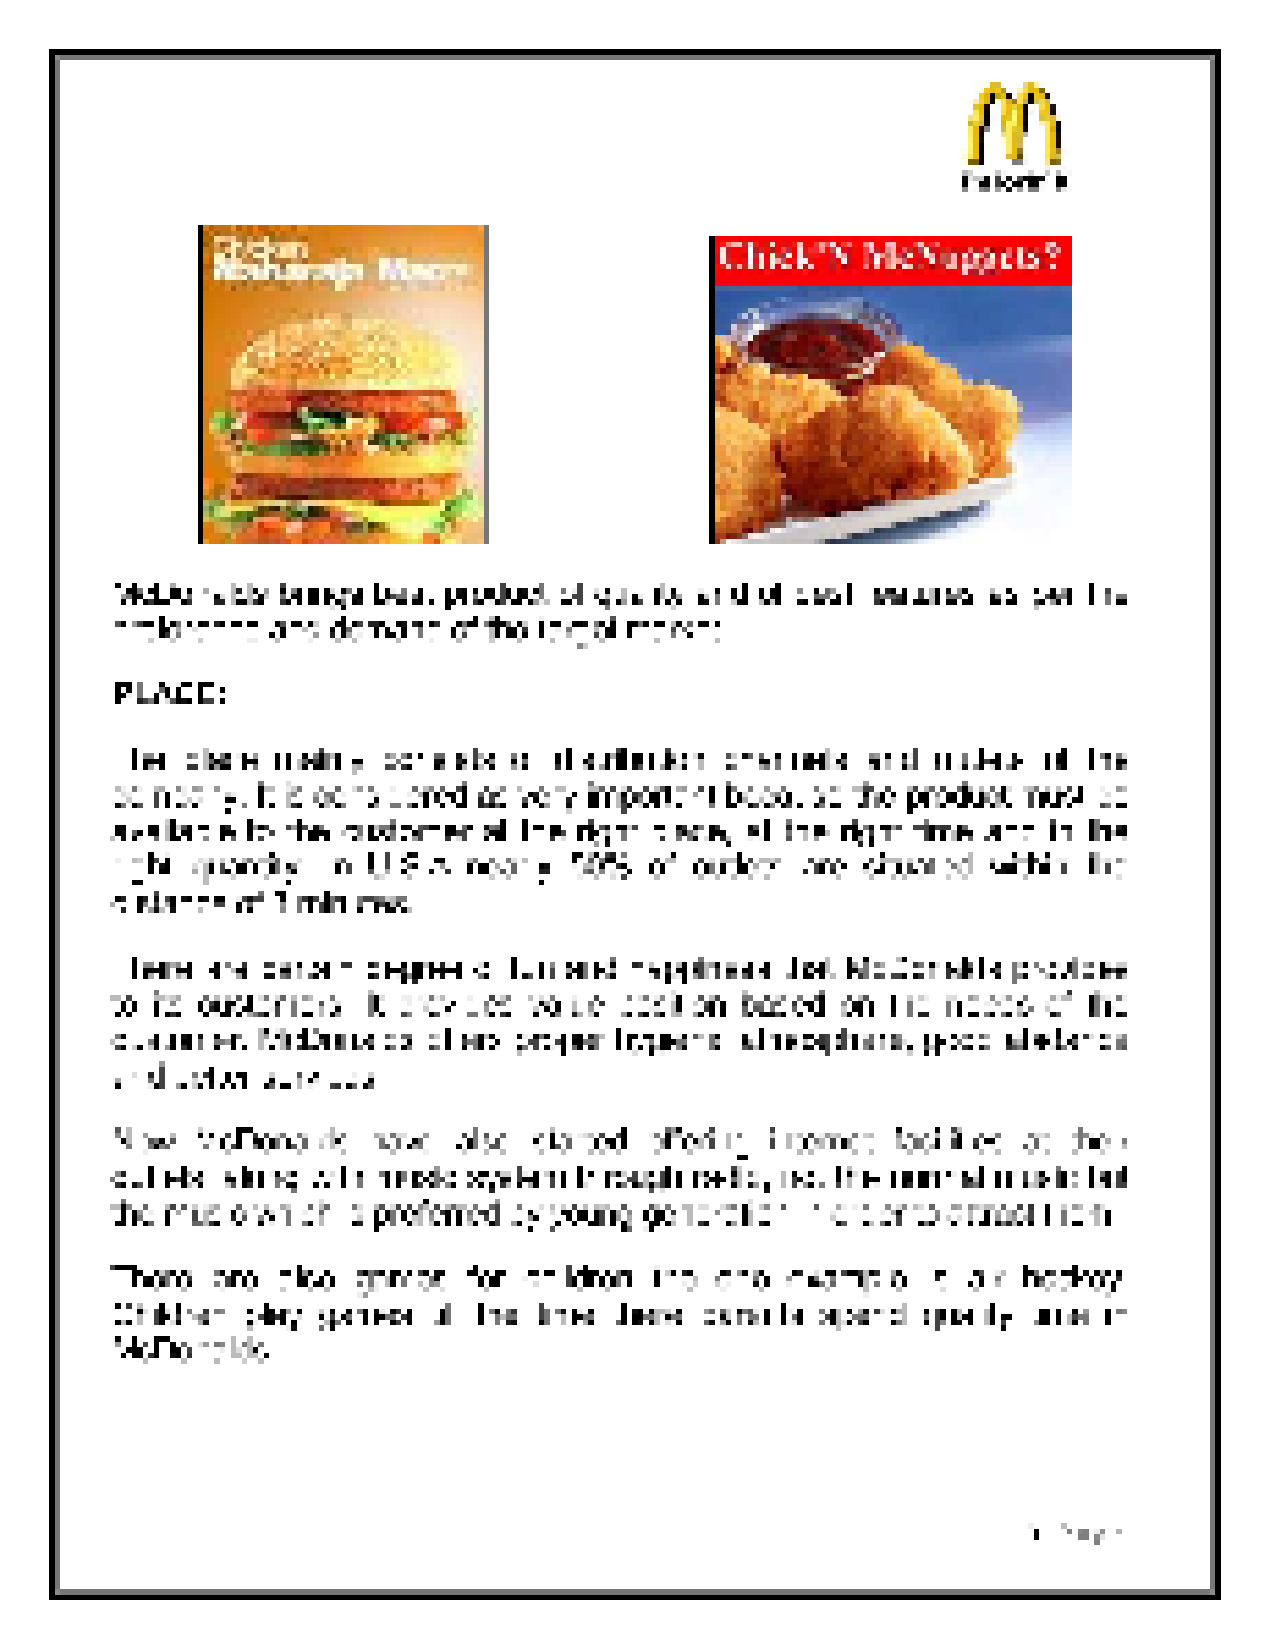 mc donalds marketing plan essay Company introduction mcdonald's is a food retail company which was established in 1954 it has around 30, 000 outlets in more than 120 countries and thus it have been considered among world's largest food chains.